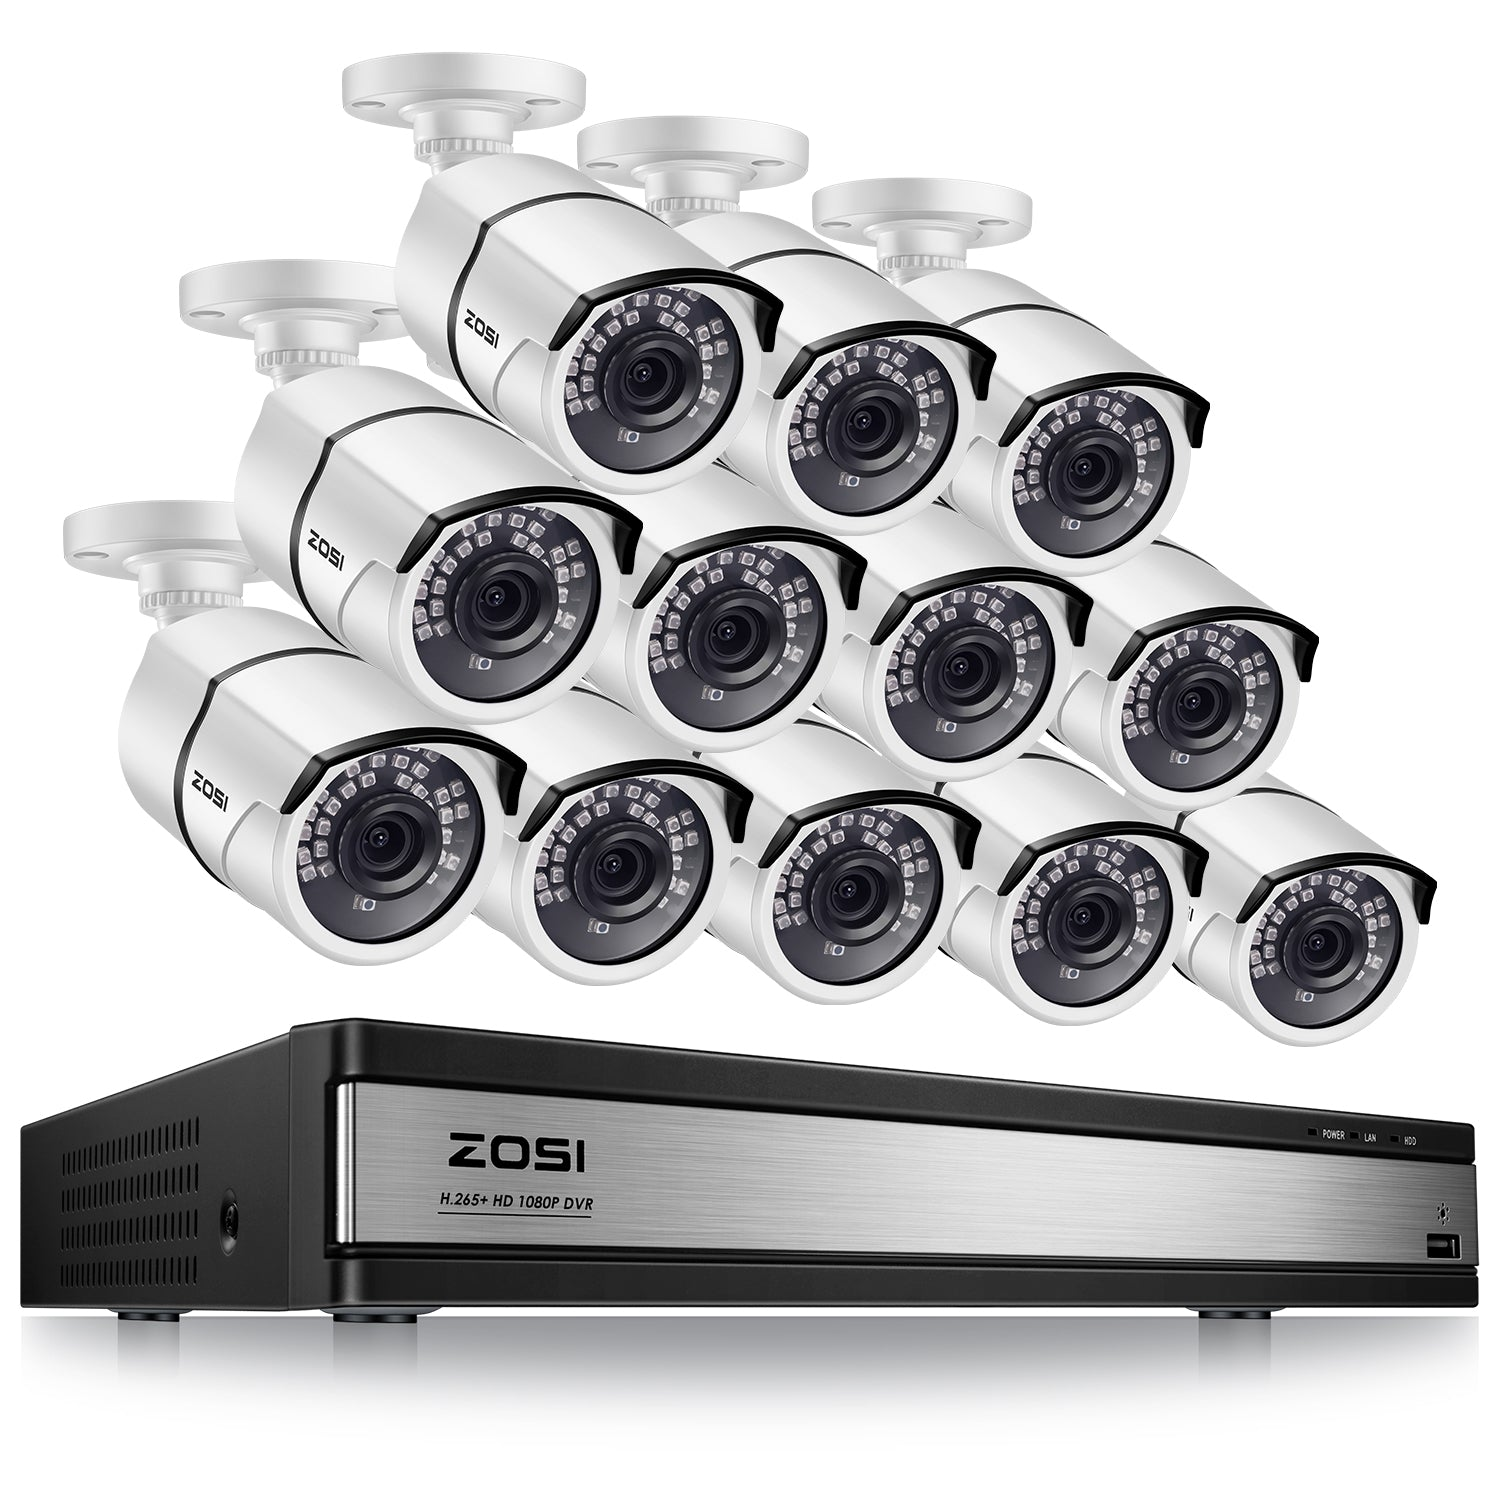 16 Channel Security System, H.265+ Video Compression, 1080P Bullet Cameras, 120ft Infrared Night Vision